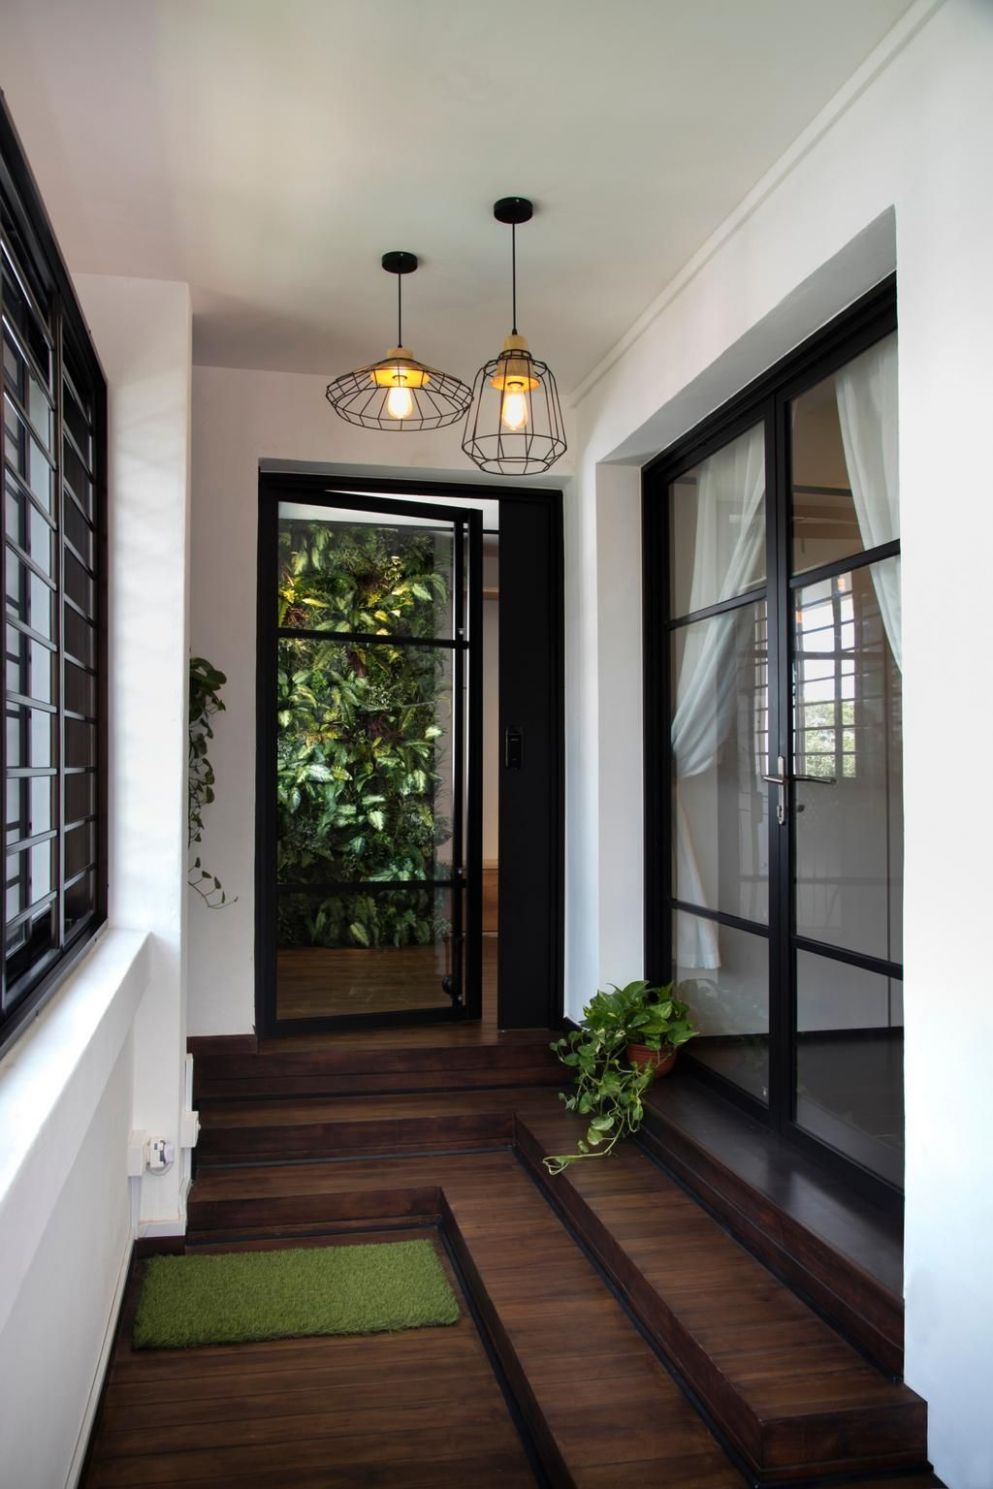 Check out this Scandinavian-style HDB Balcony and other similar ...